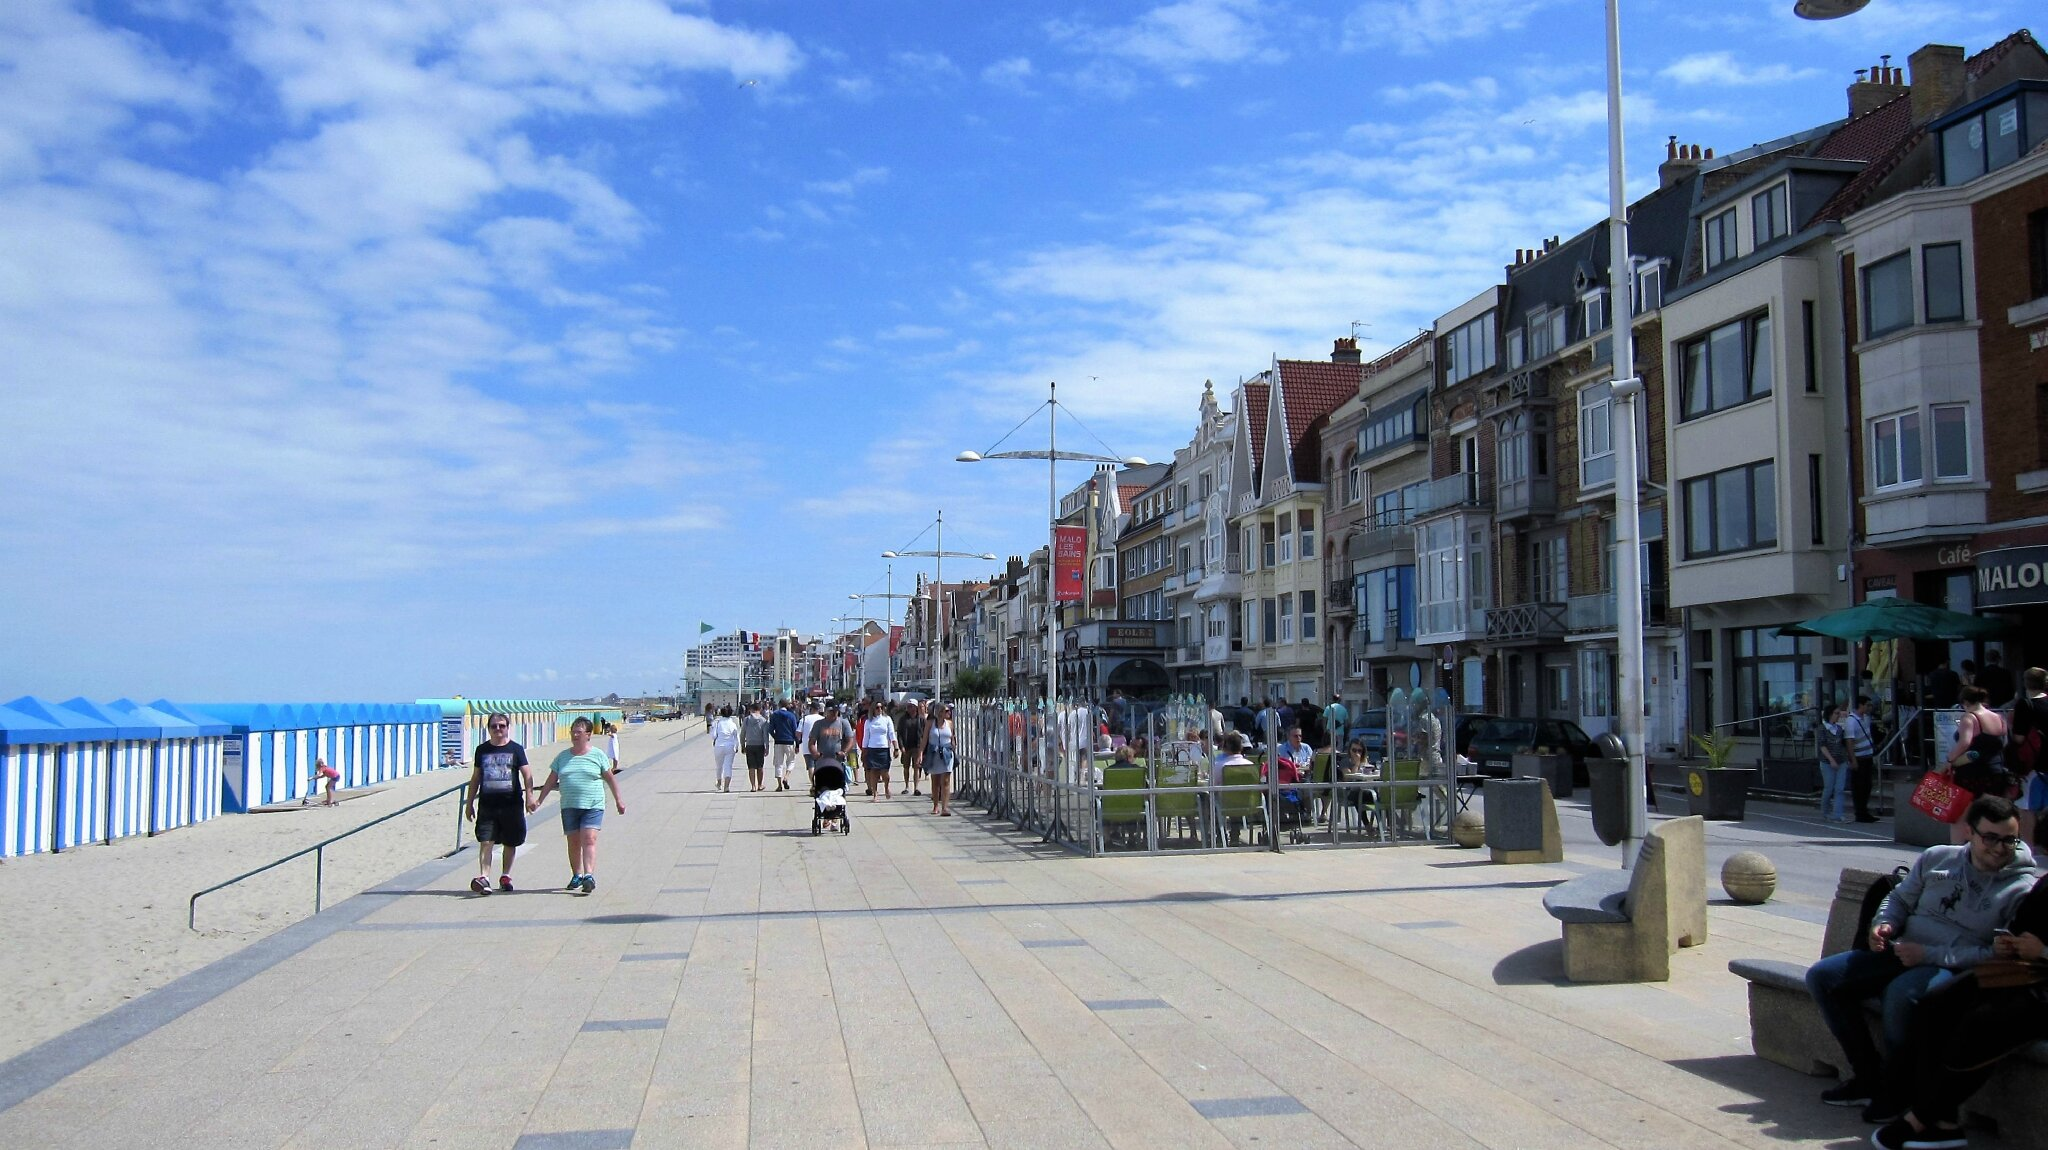 Ch Dunkerque Balade En Ch Nord Dunkerque Malo Les Bains Chrisnord Trelon Nord